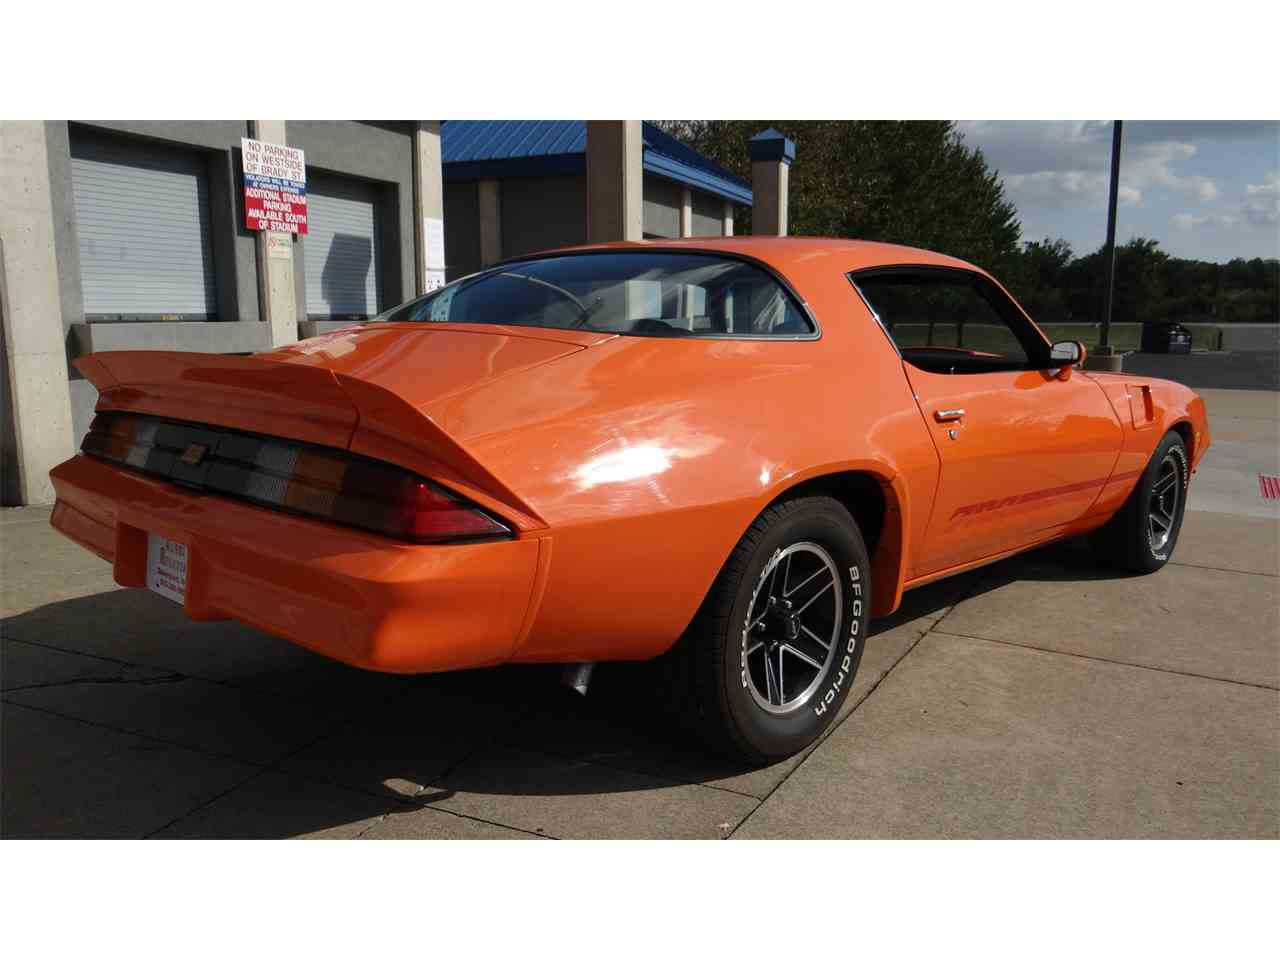 Cars For Sale In Davenport Iowa